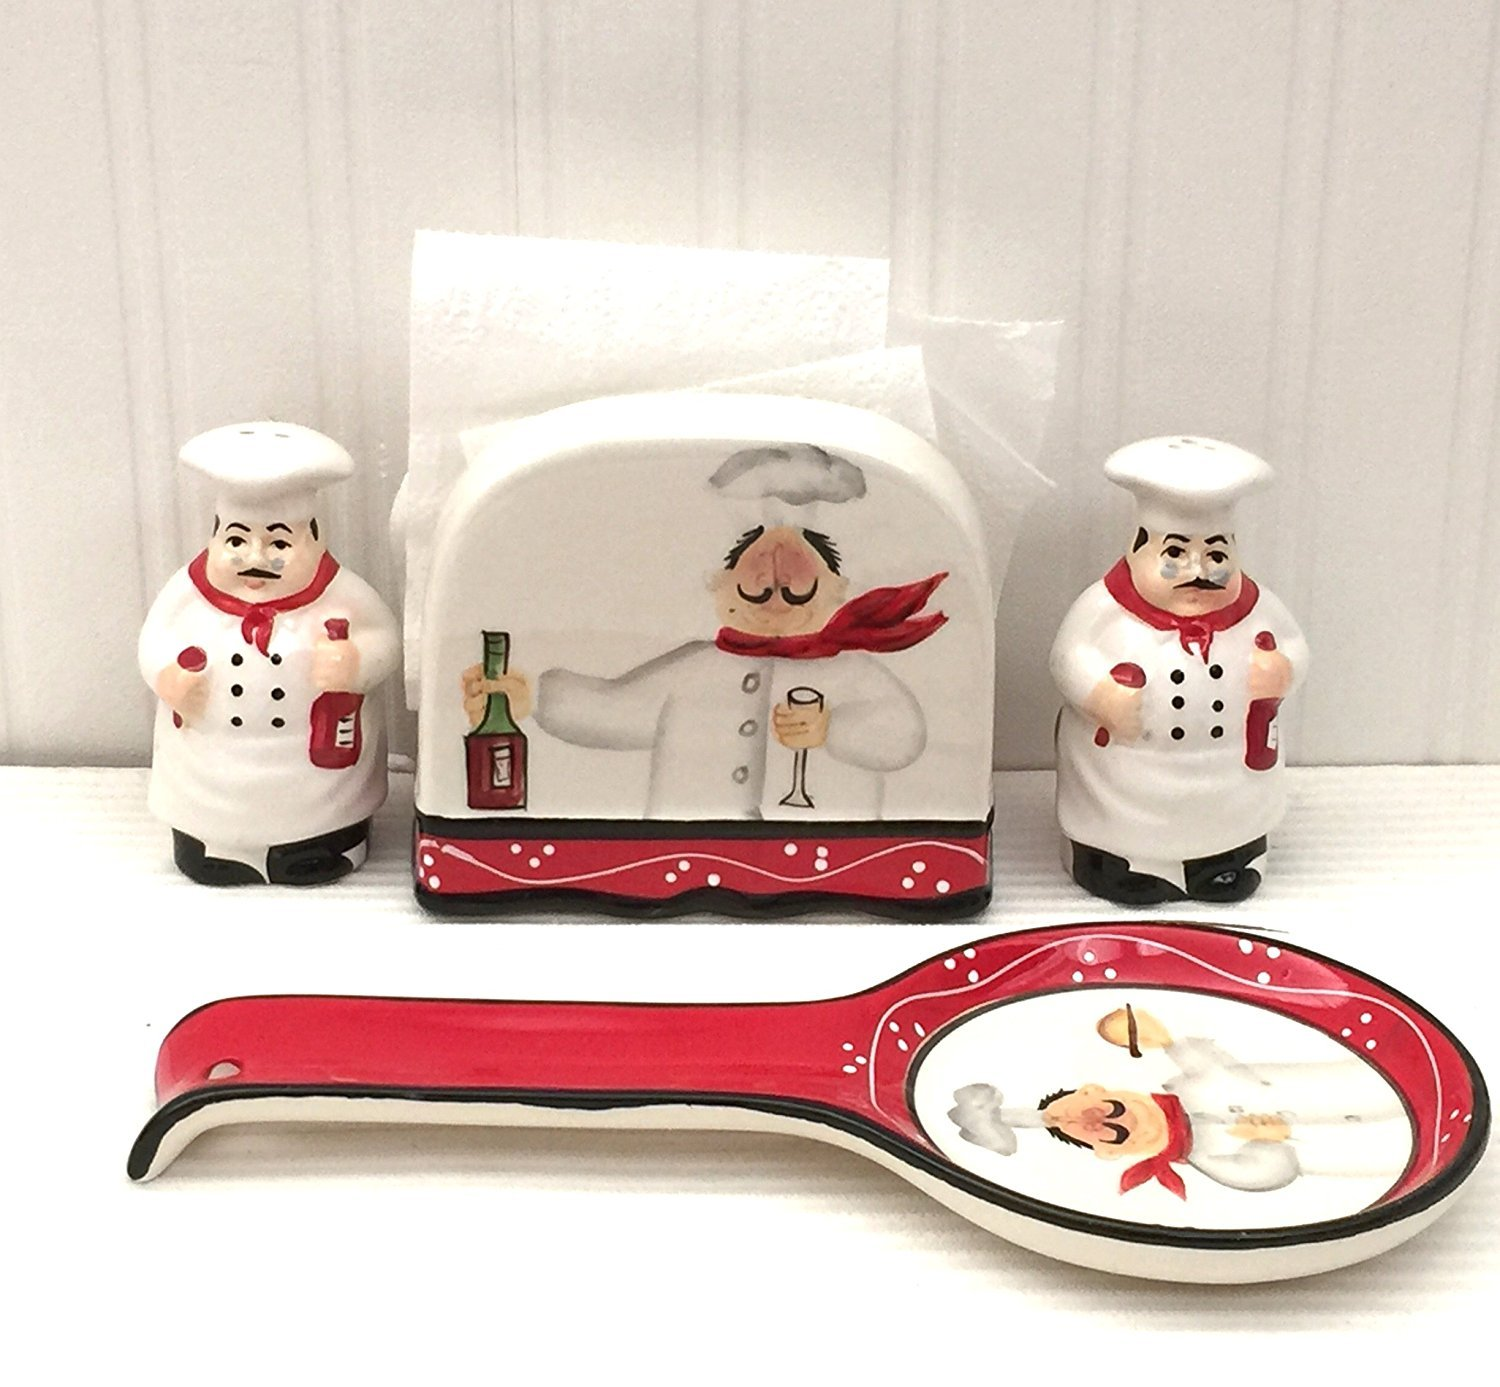 Tuscany Colorful Plump Bistro Chef Hand Painted Stove Top Set of 4, 89125/28 by ACK